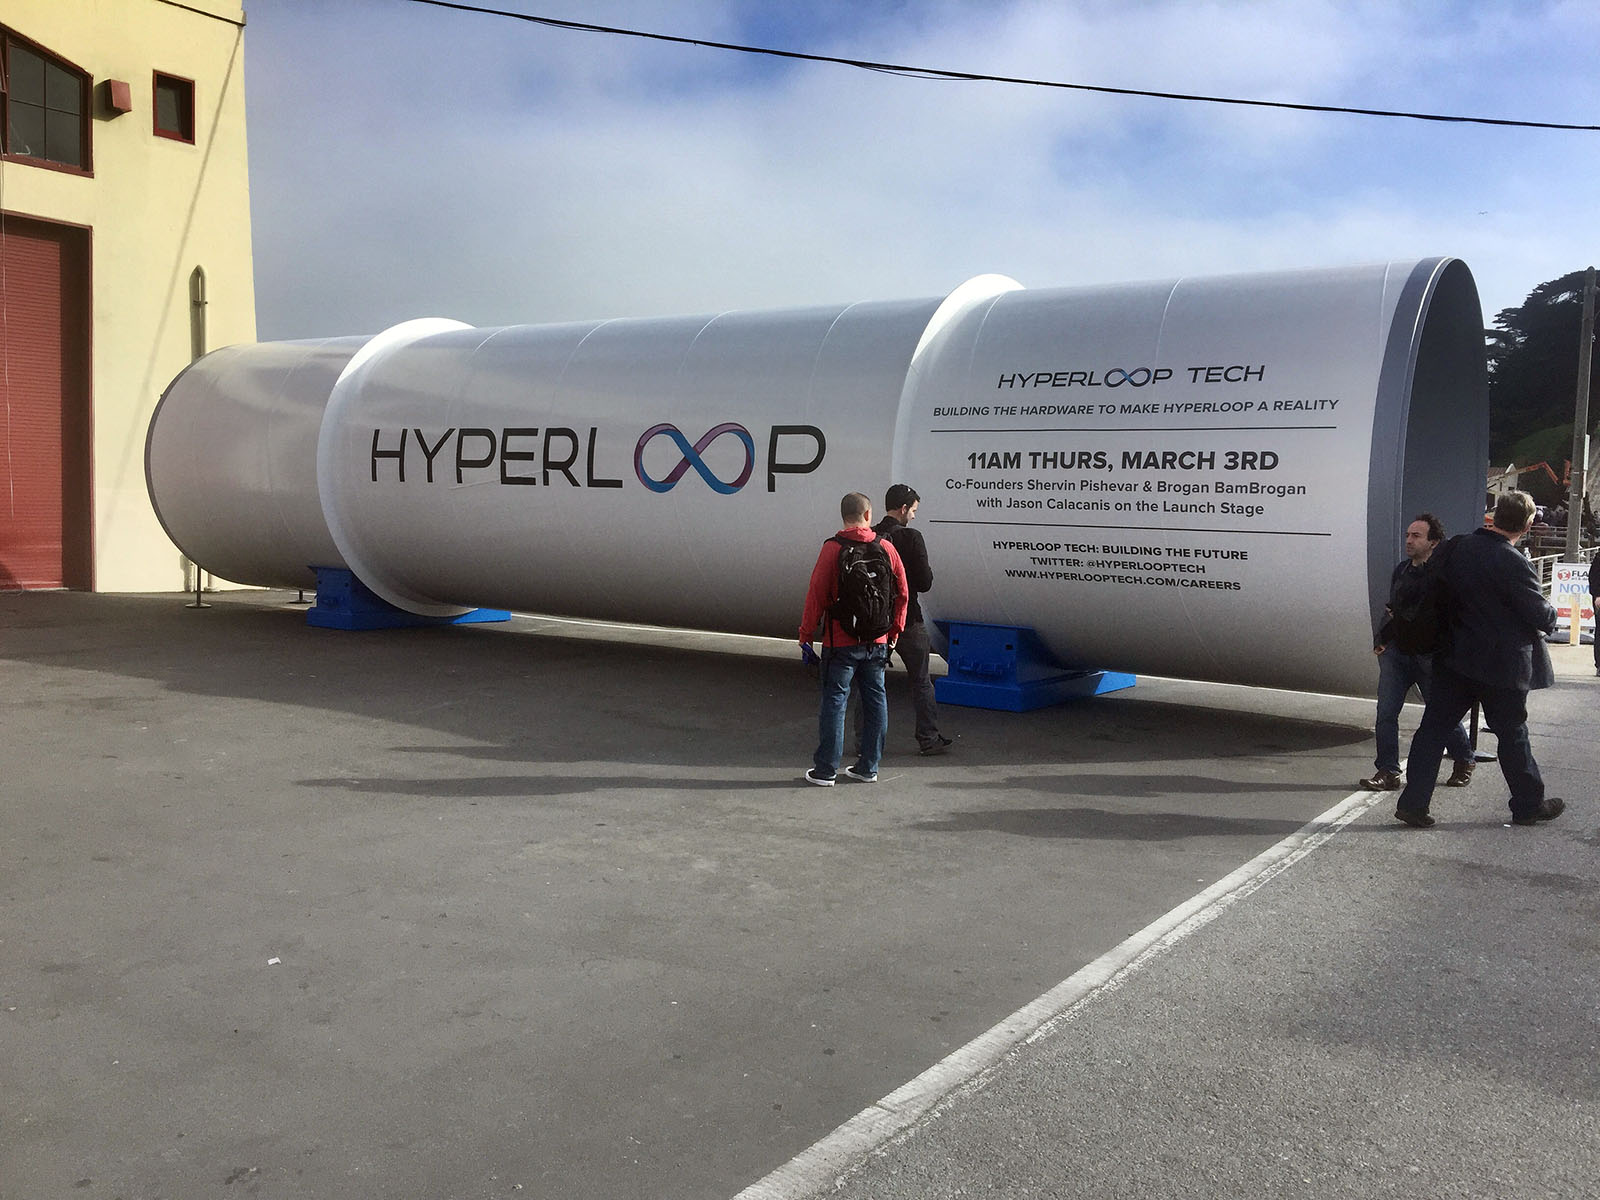 hyperloop-one-might-implode-after-co-founder-files-scandalous-lawsuit-109401_1 El Hyperloop One